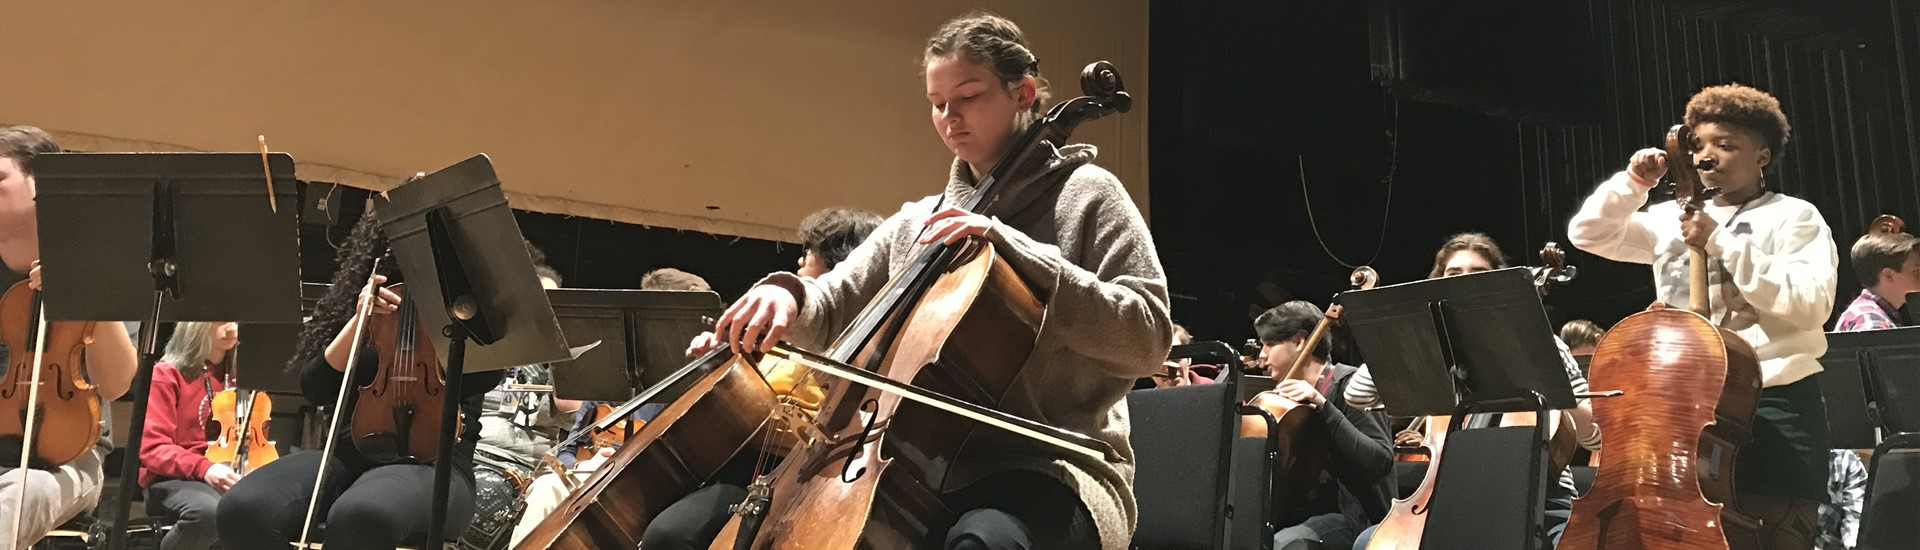 Grace Gill playing cello